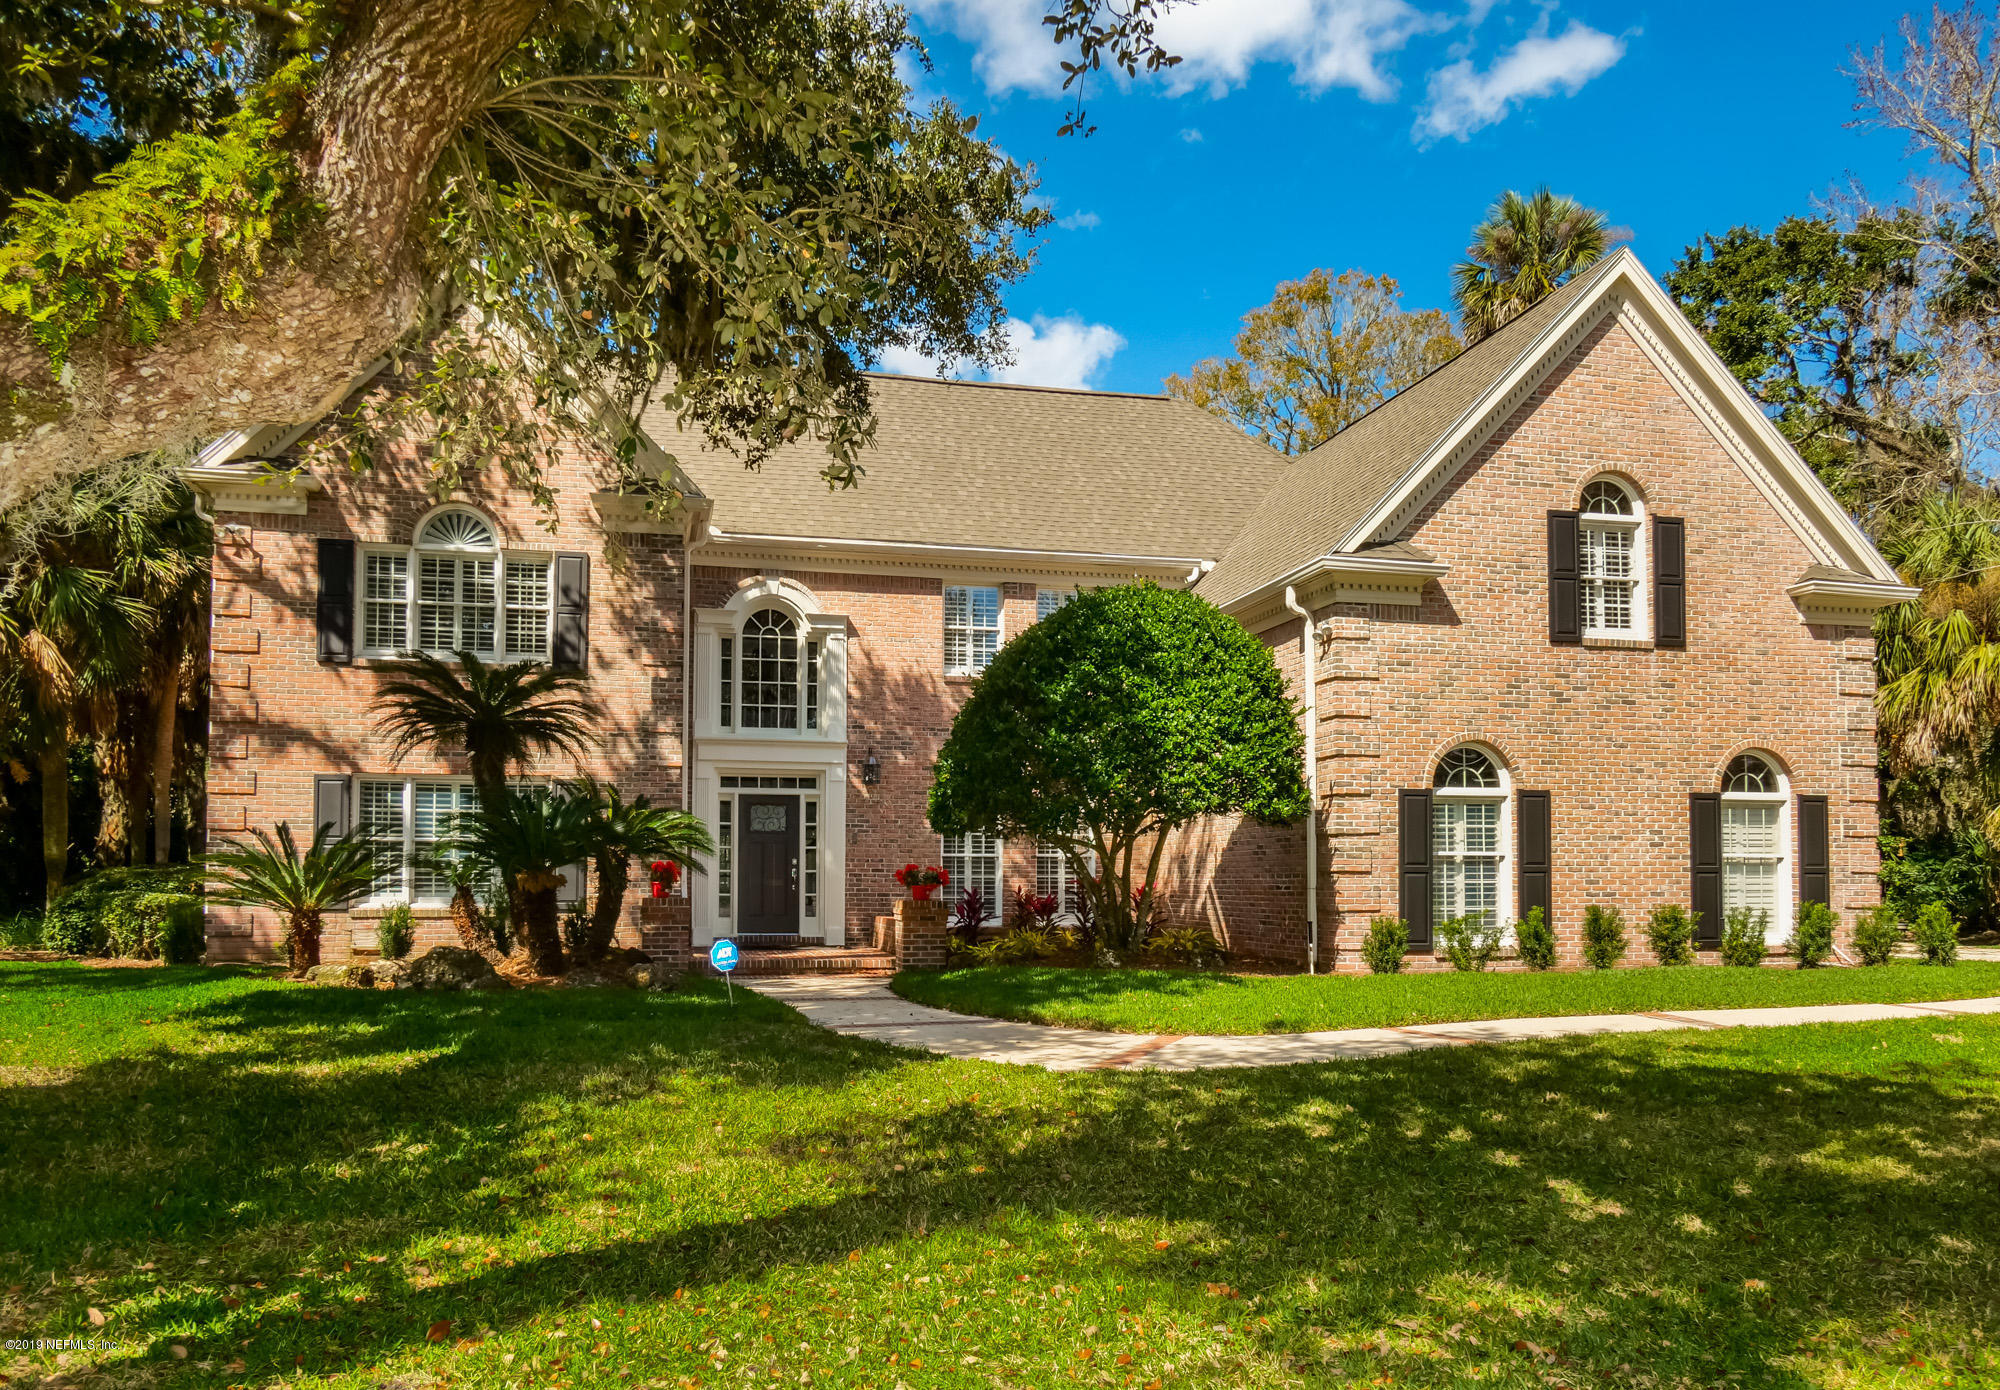 6280 HIGHLANDS, PONTE VEDRA BEACH, FLORIDA 32082, 5 Bedrooms Bedrooms, ,4 BathroomsBathrooms,Residential - single family,For sale,HIGHLANDS,981228